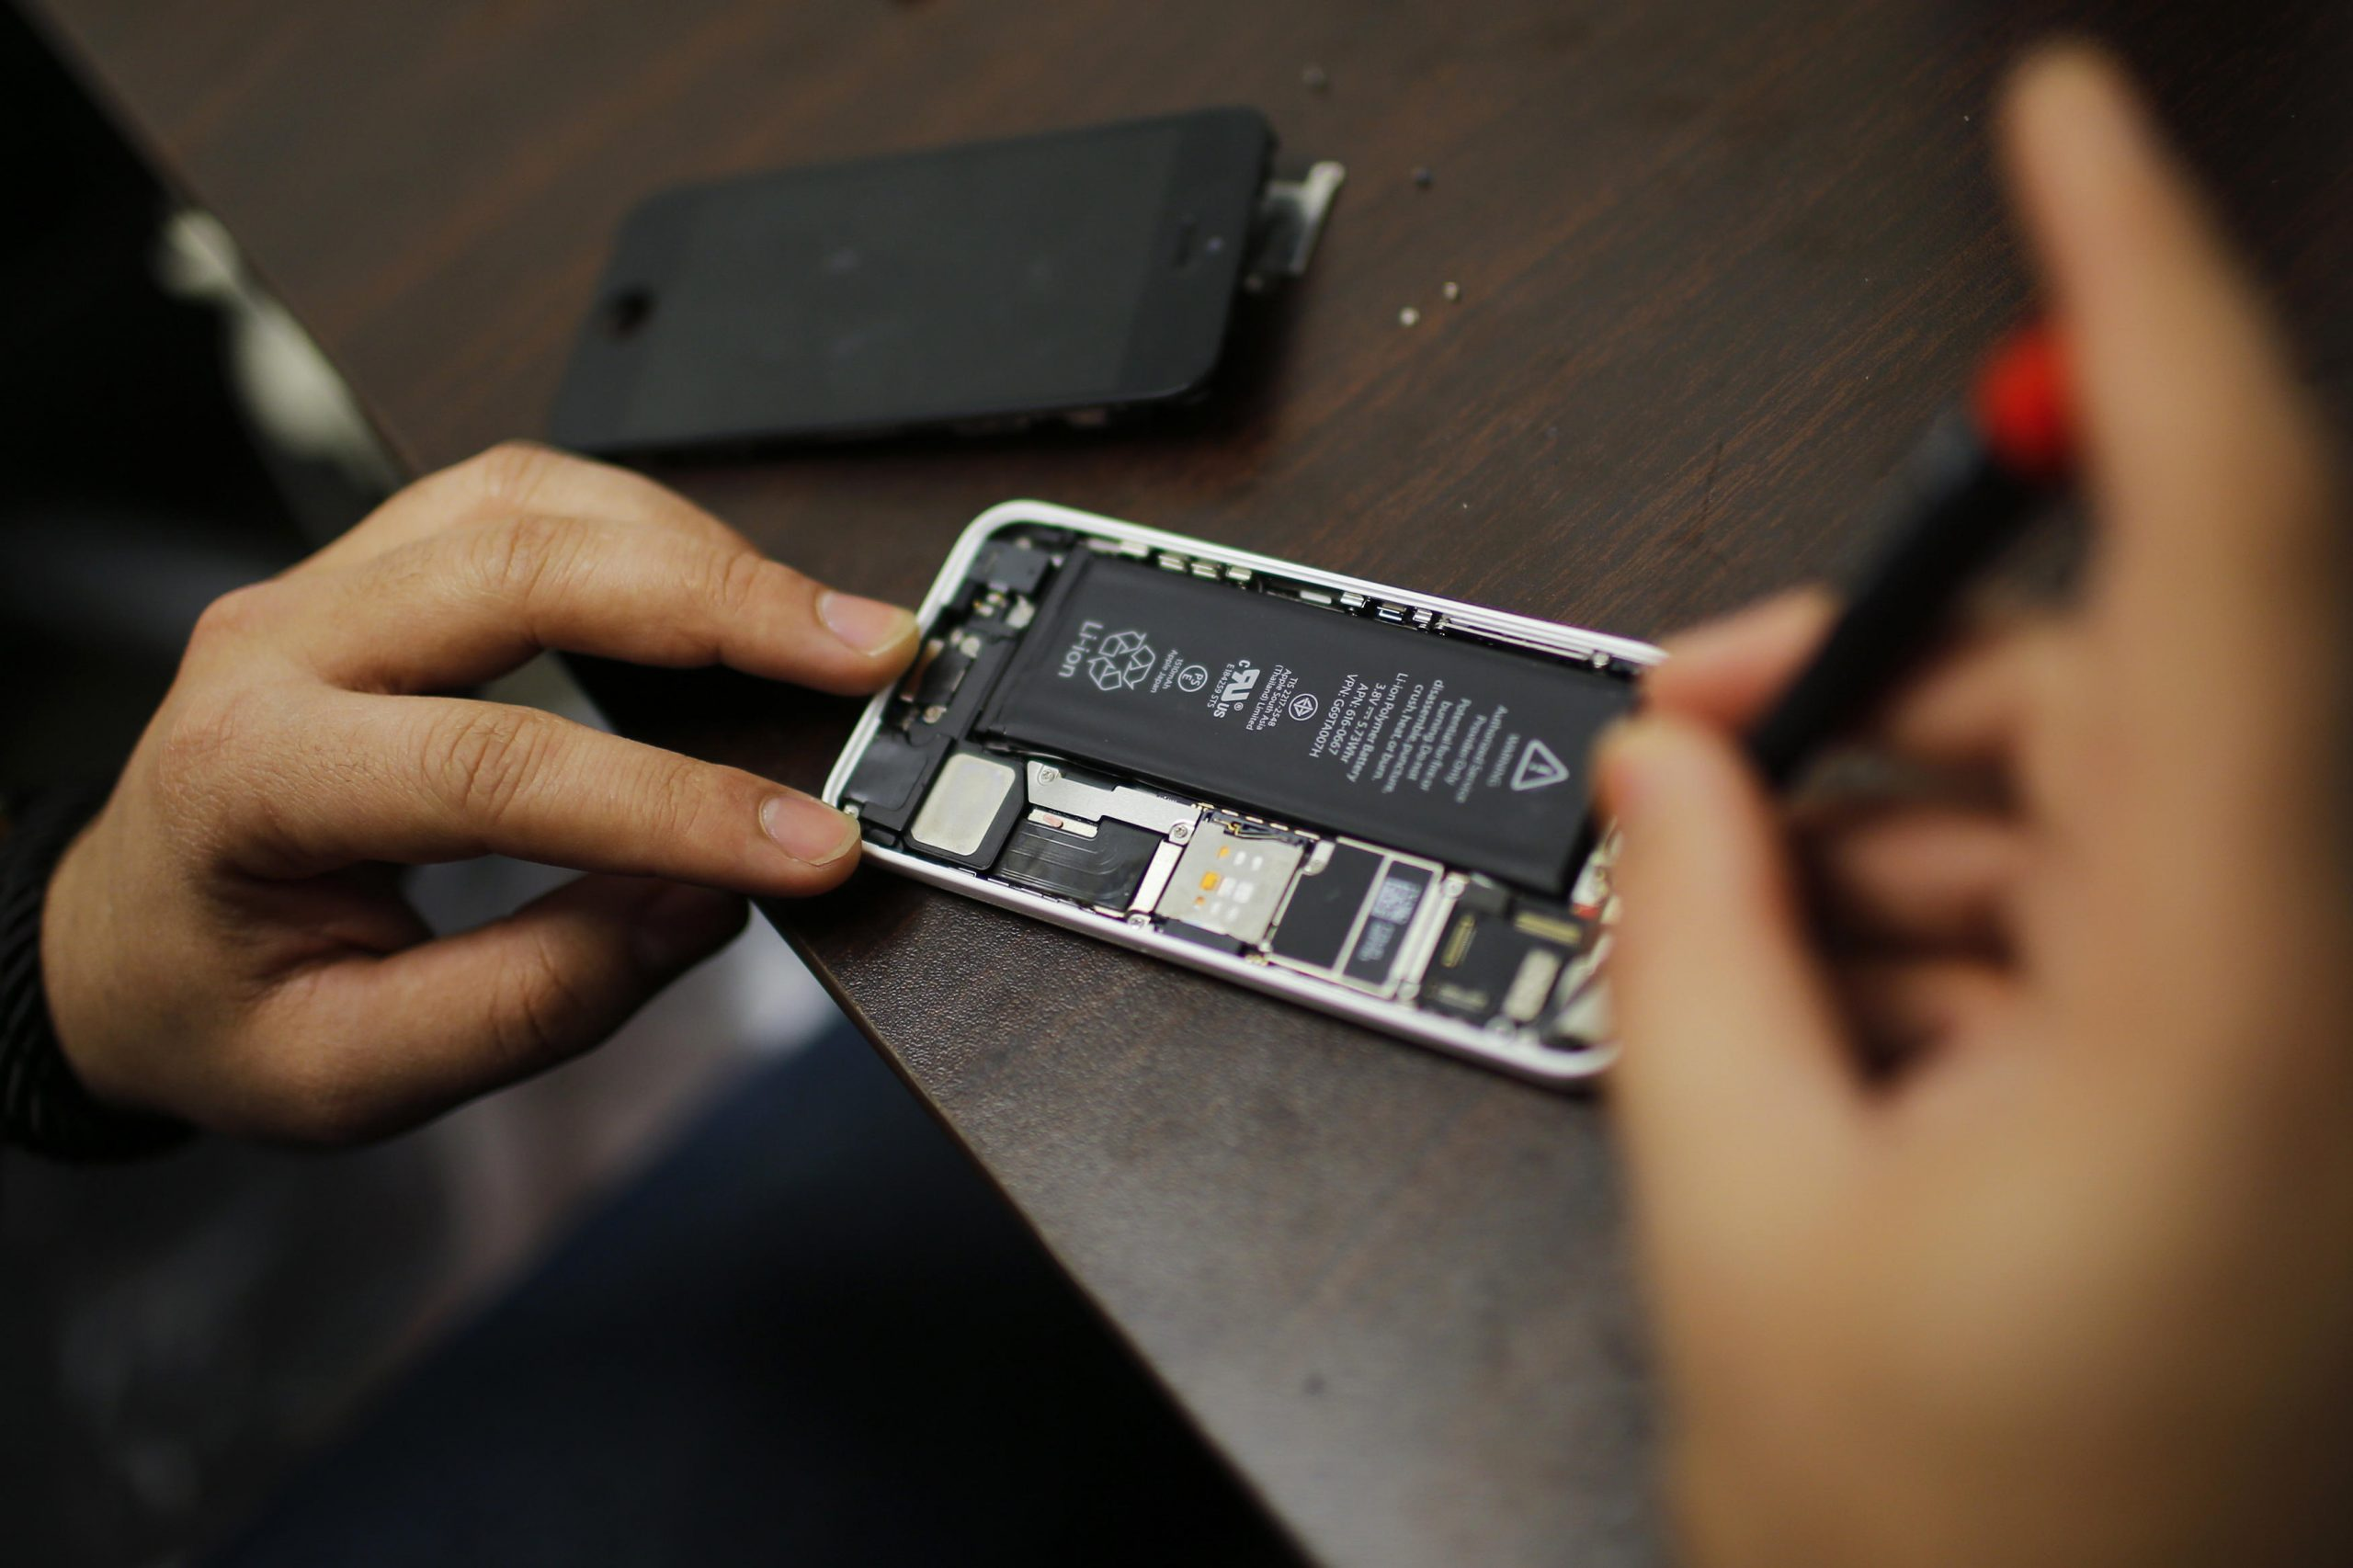 A worker tries to repair an iPhone in a repair store in New York